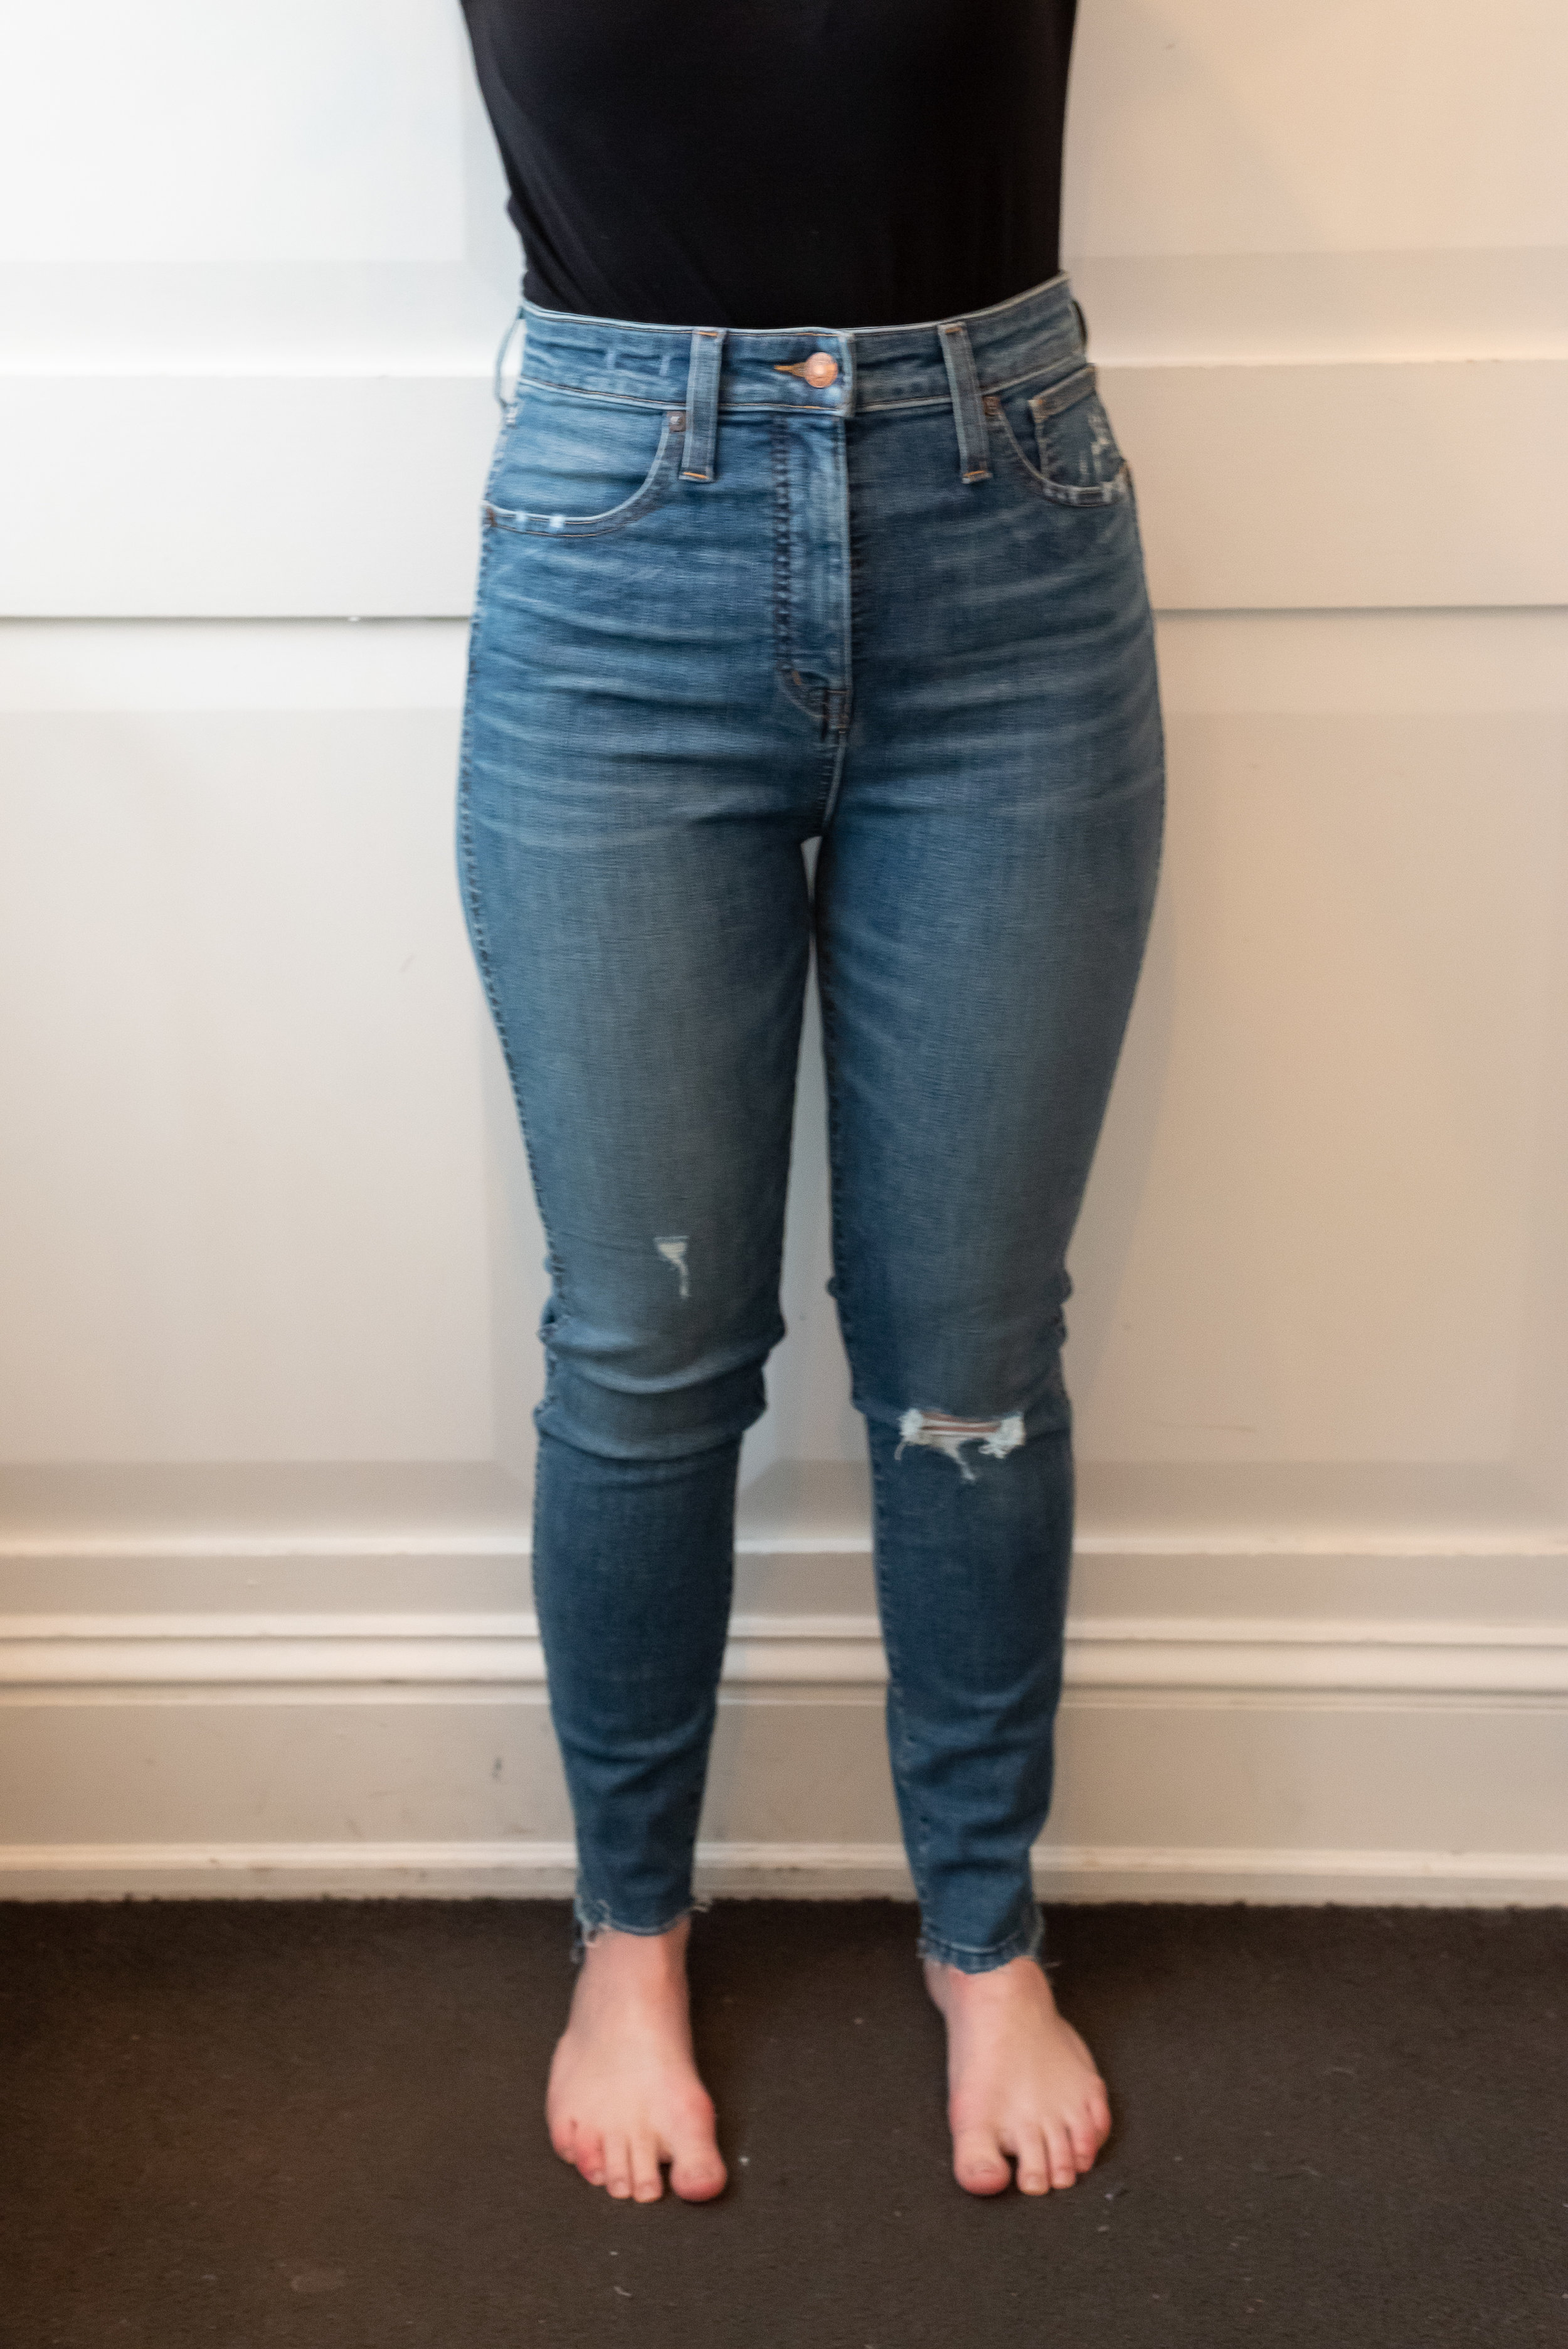 Madewell Curvy High Rise Skinny Jeans - Size 28 - Front View